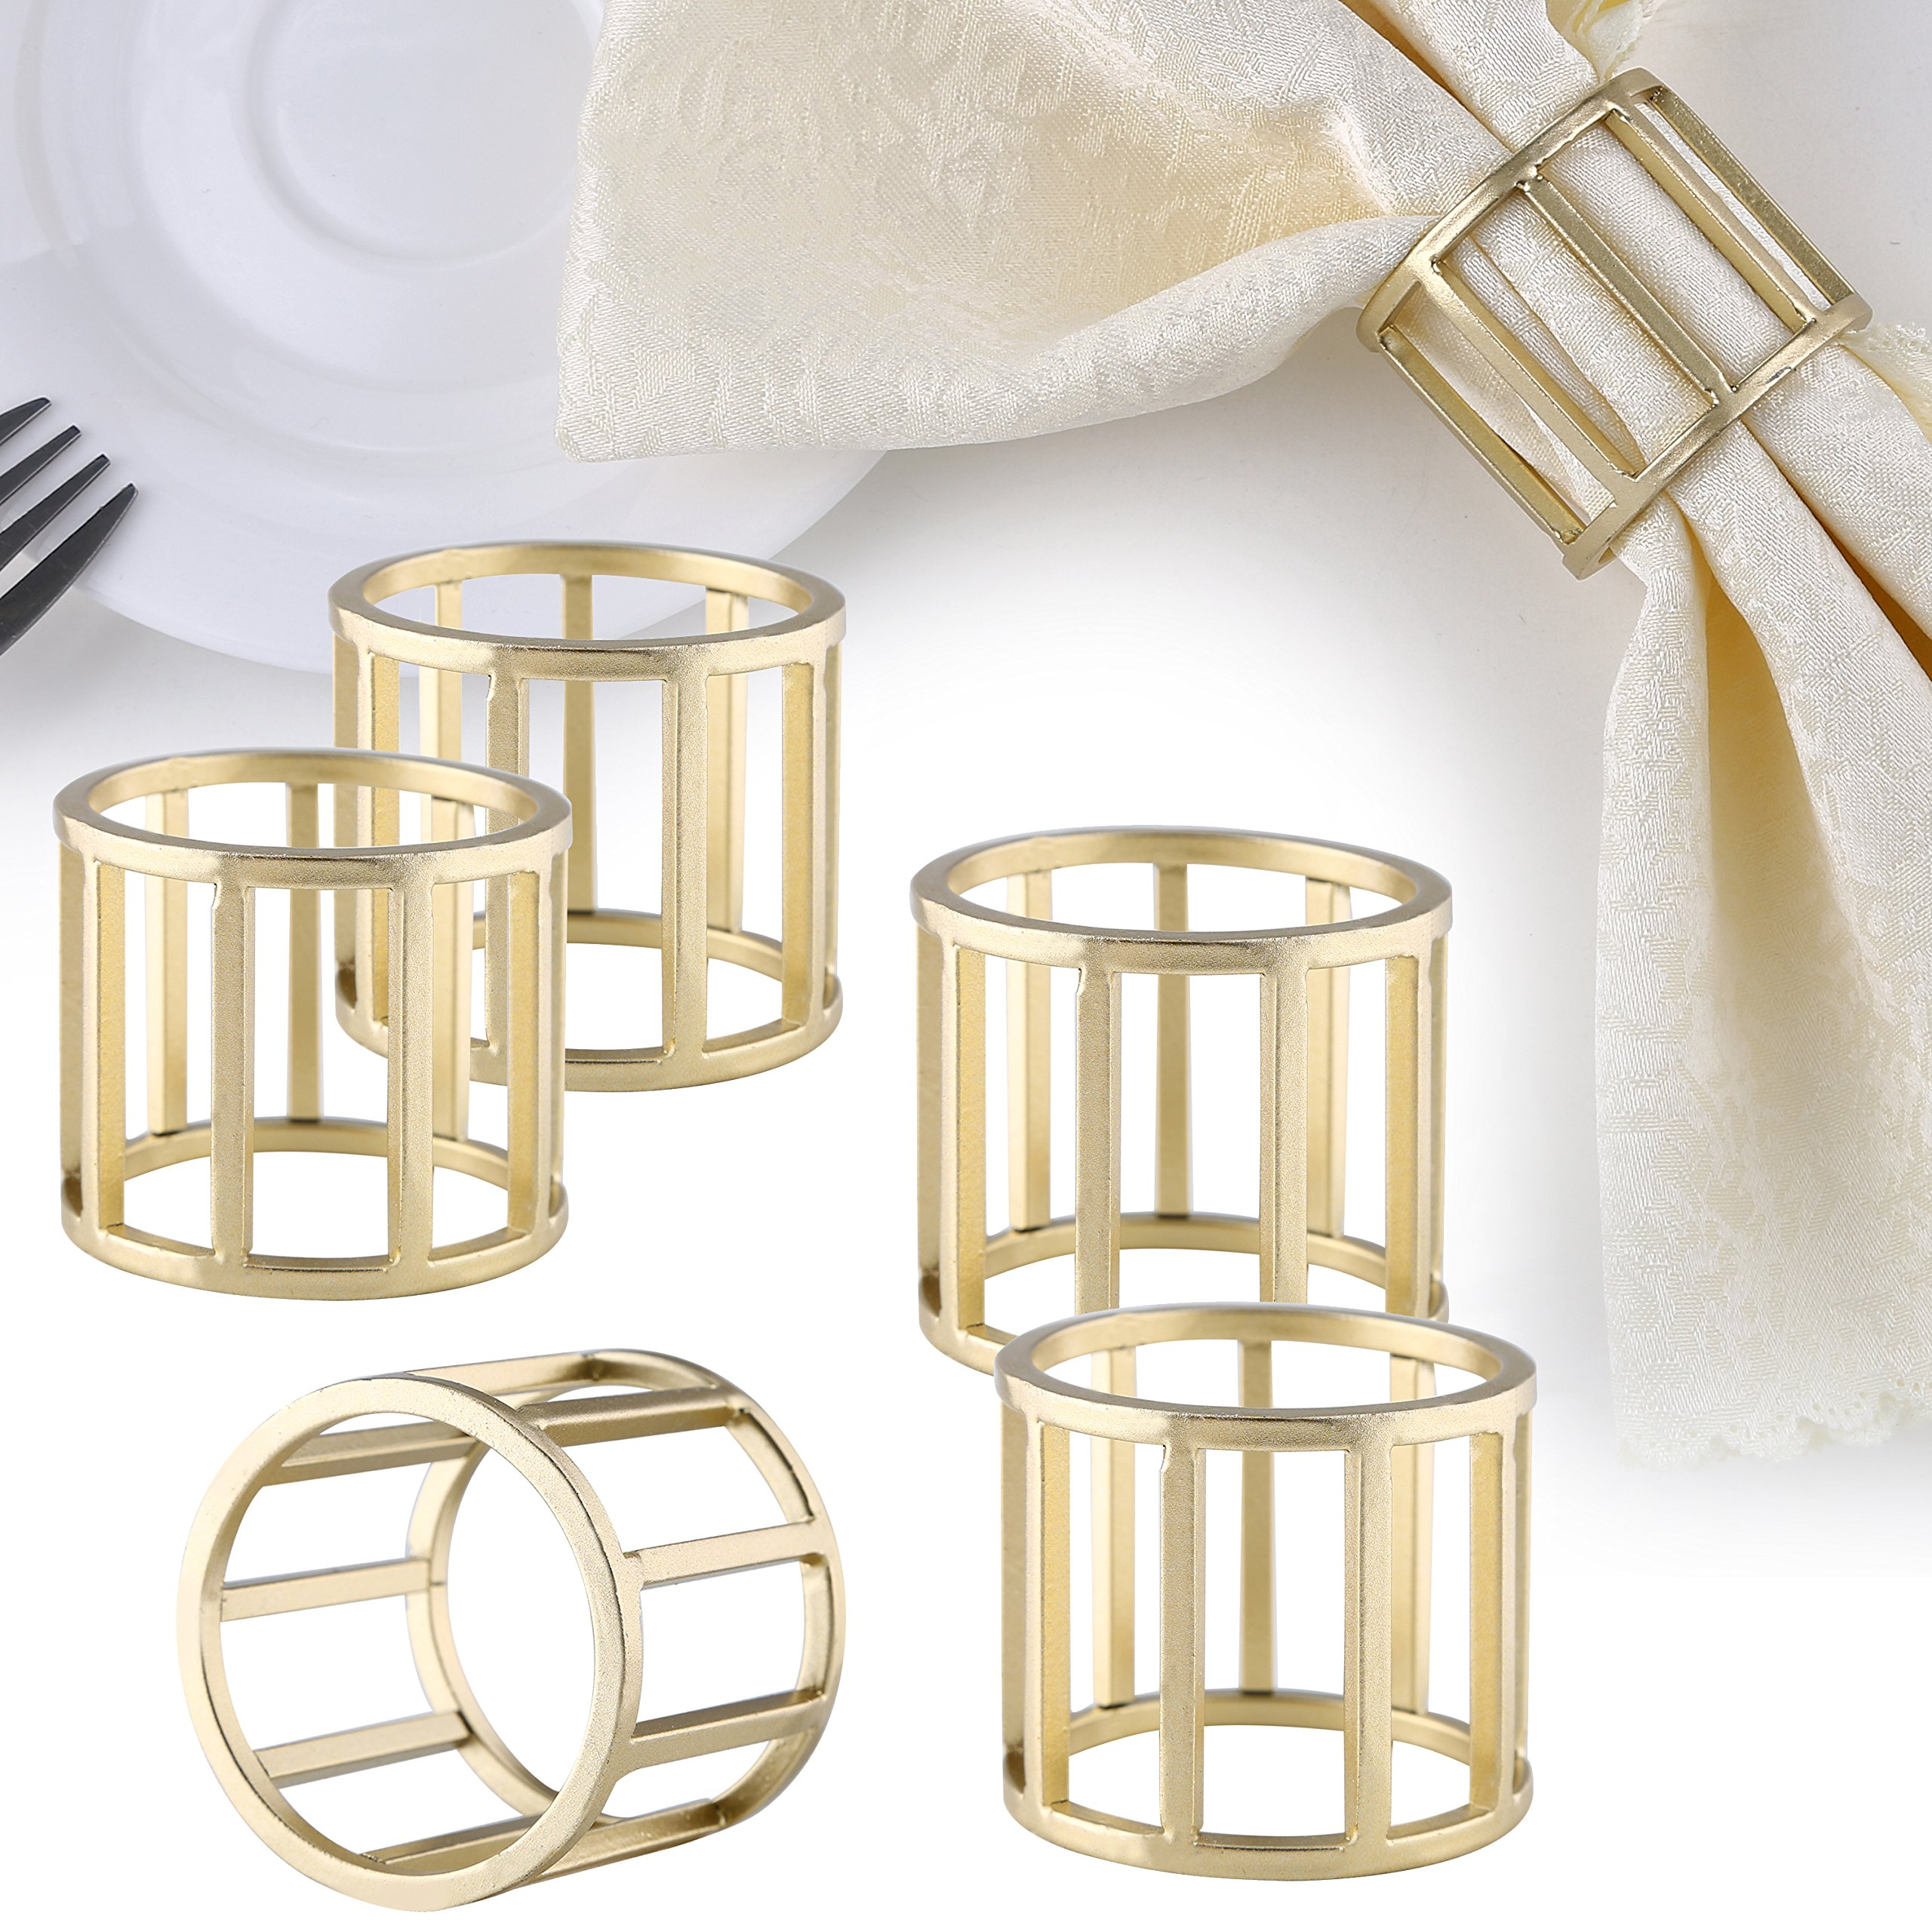 Set of 6 Modern Design Round Metal Dining Napkin Ring Holders, Brass-Tone by MyGift